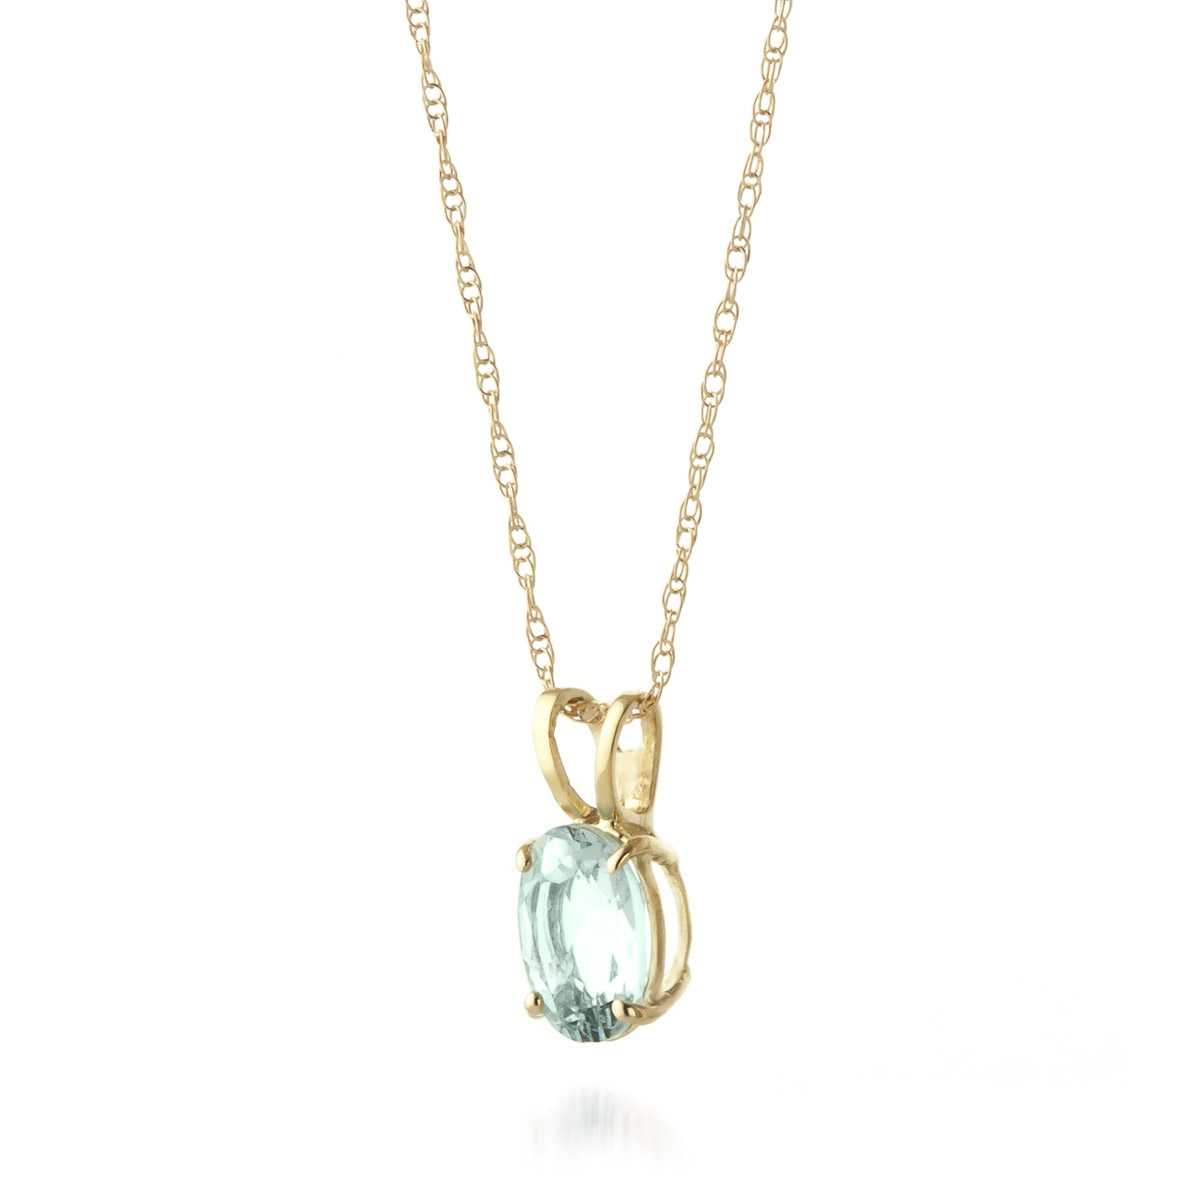 Oval Cut Aquamarine Pendant Necklace 0.75ct in 9ct Gold